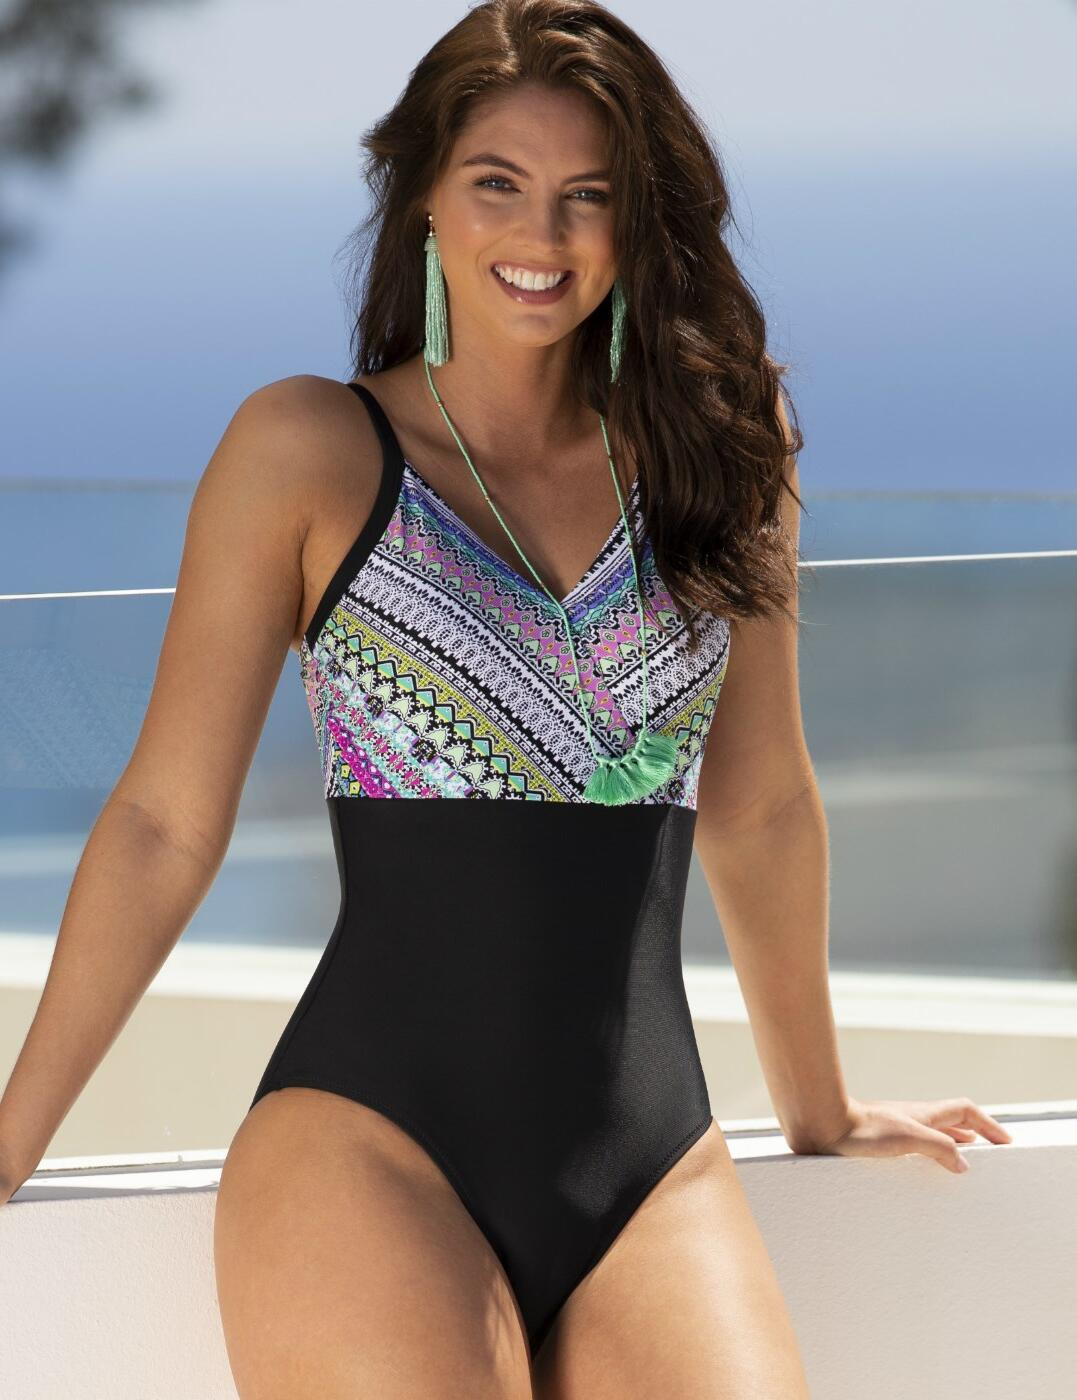 15107 Pour Moi Odyssey Control Swimsuit - 15107 Riviera Maya